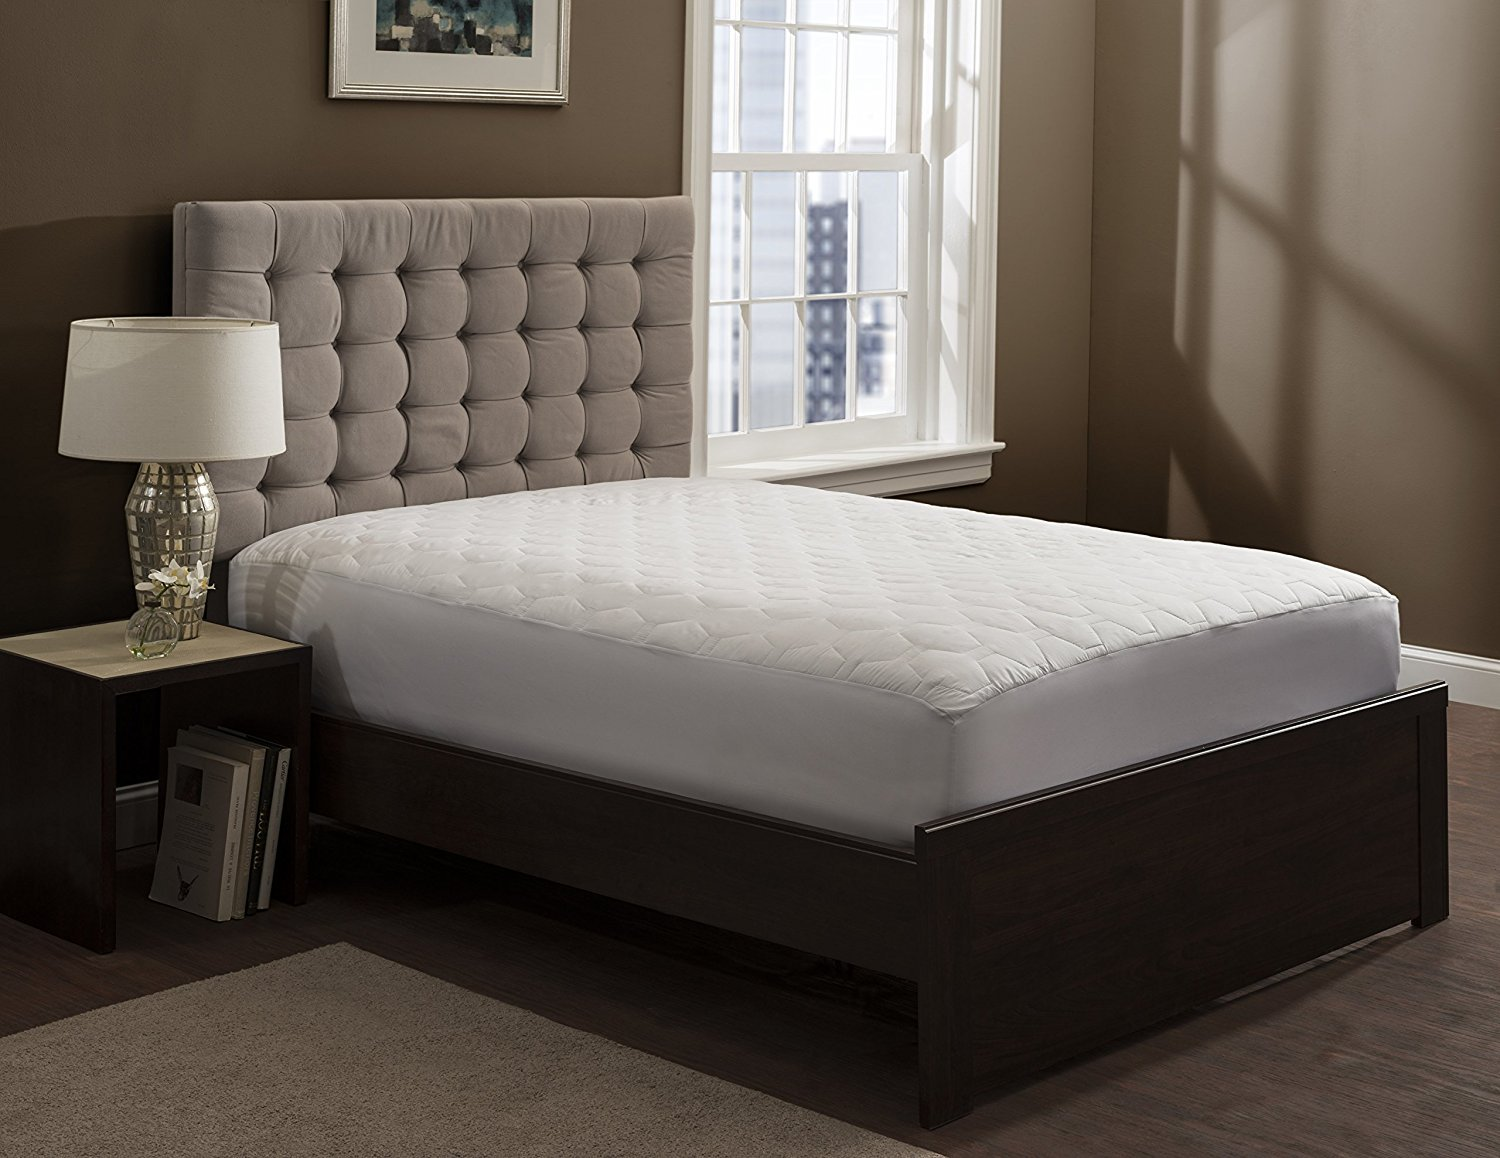 """THE GRAND - Fitted Quilted Mattress Pad - Mattress Topper Stretches to 18""""  Deep! (Queen Size - 60x80"""") Queen Mattress Cover"""